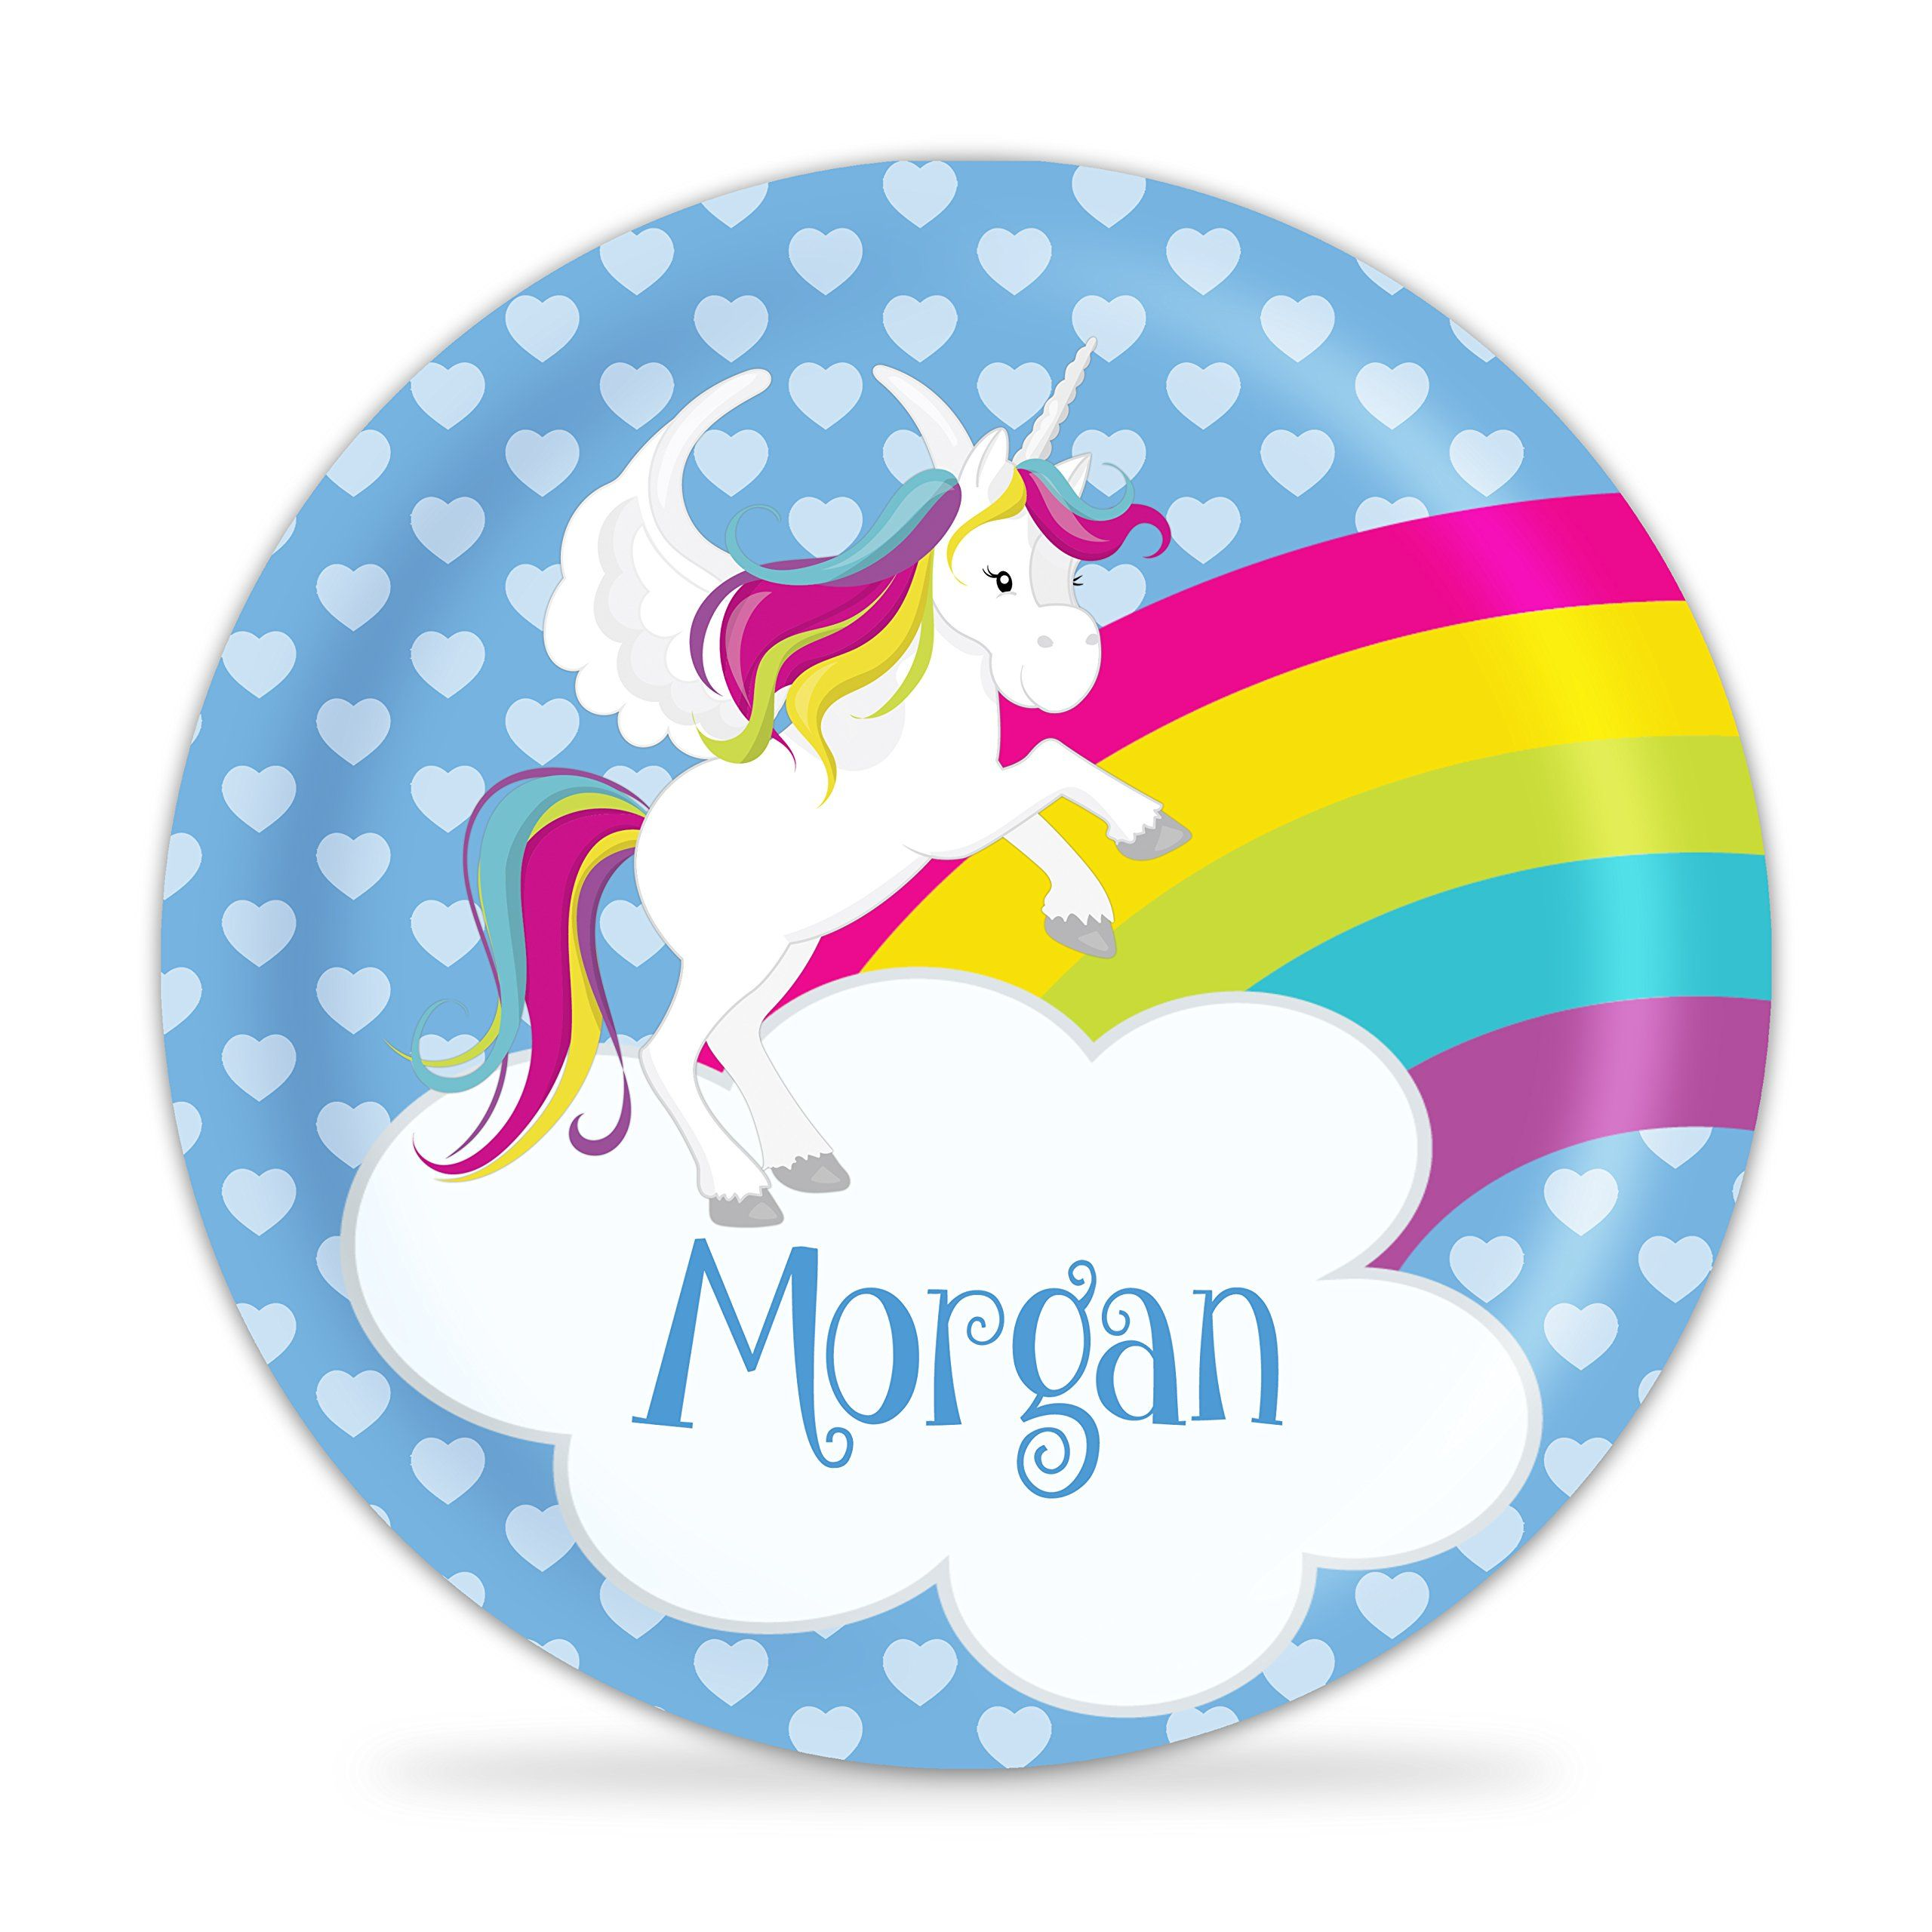 Unicorn Plate - Rainbow Unicorn Melamine Personalized Plate. 1 Personalized Melamine Plate - makes a Great Kids Gift ~ I Design and Customize ...  sc 1 st  Pinterest & Unicorn Plate - Rainbow Unicorn Melamine Personalized Plate. 1 ...